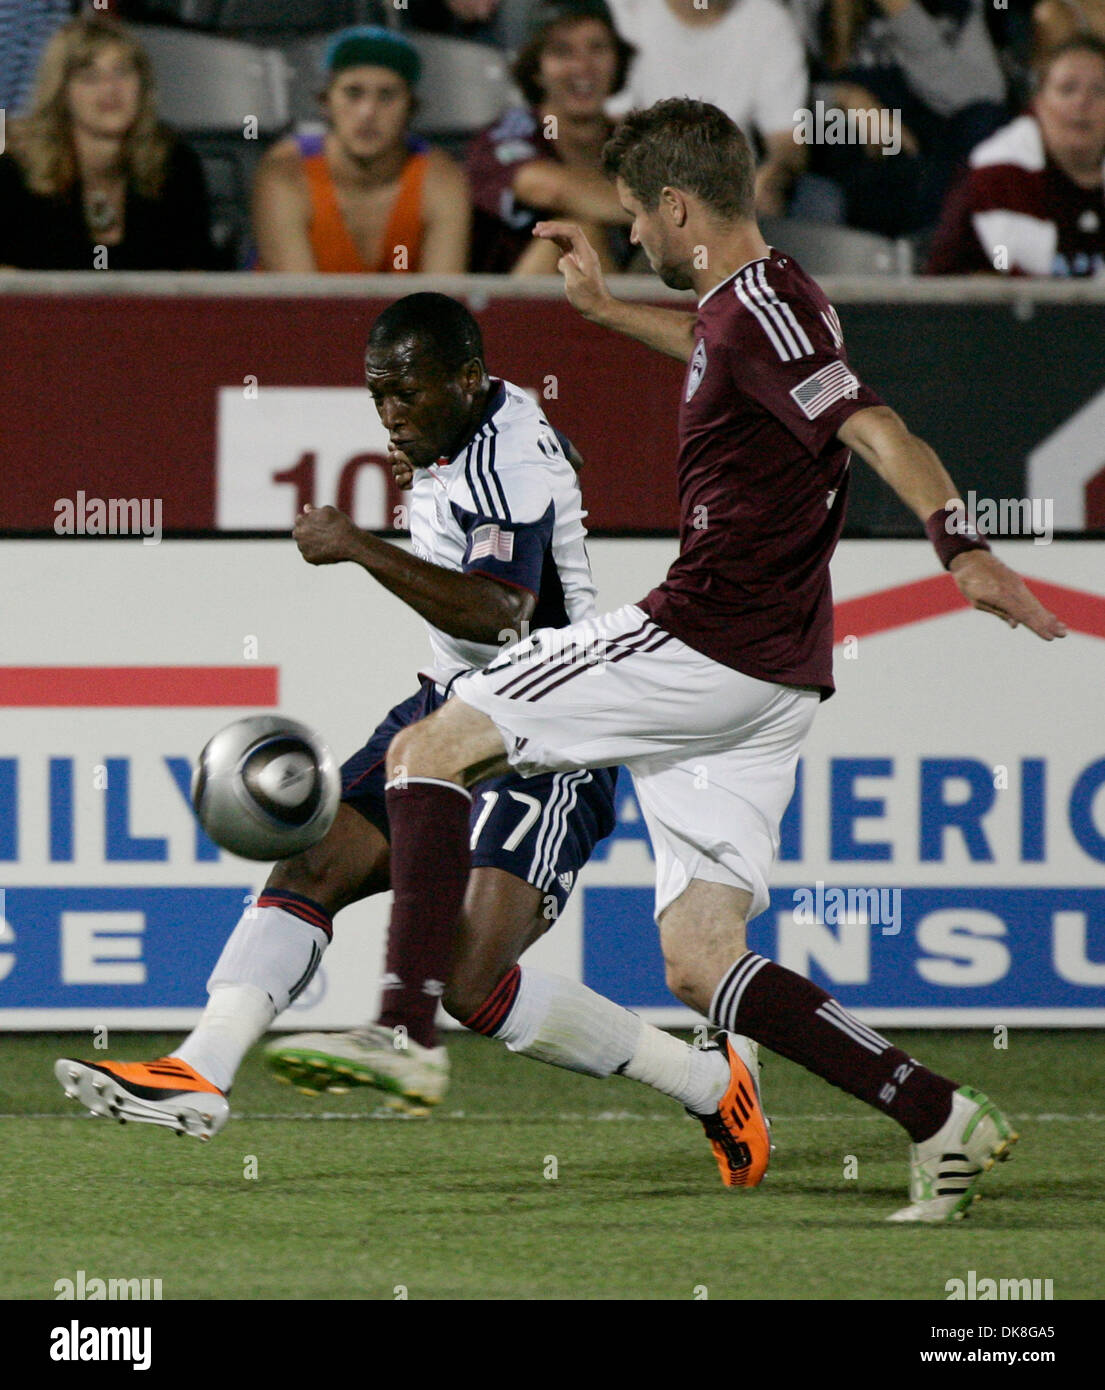 Jul 23, 2011 - Commerce City, Colorado, U.S. - New England Revolution's SAINEY NYASSI and Colorado Rapids' DREW MOOR fight for possession of the ball during the second half of their 2-2 tie. (Credit Image: © Will Powers/ZUMAPress.com) - Stock Image